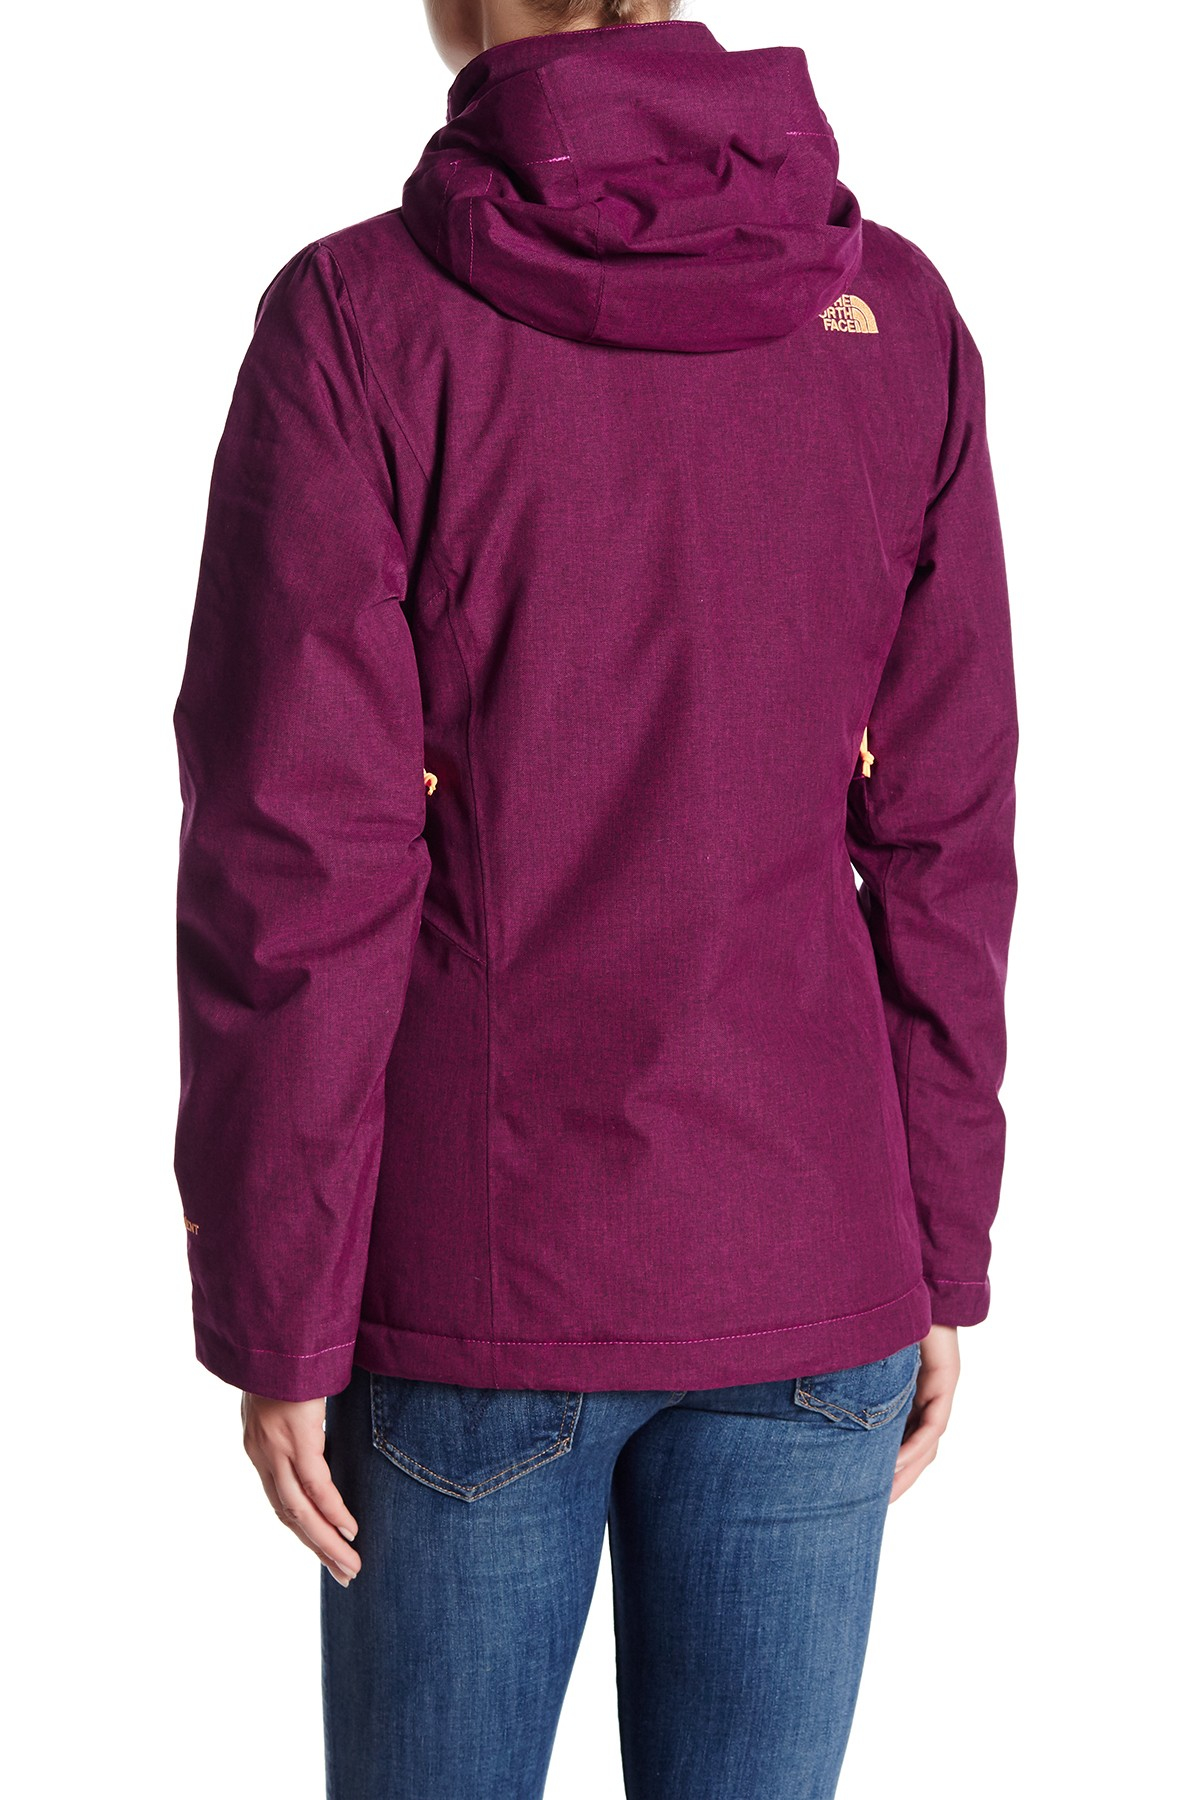 North Face Inlux Insulated Jacket